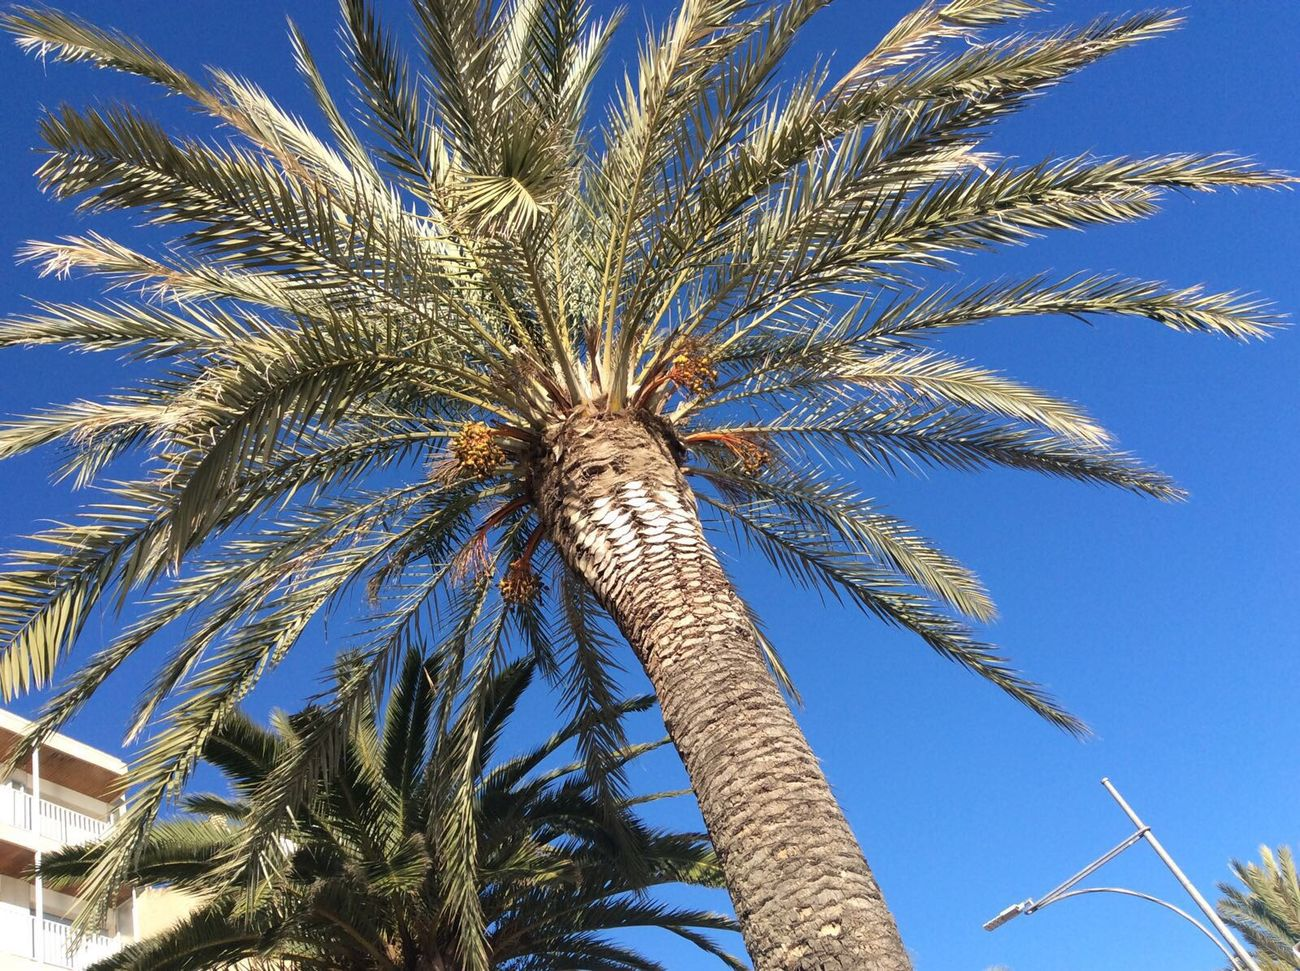 Photography Iphonephotography IPhoneography Palmtrees Spain2015🇪🇸 Barça Barcelona Holiday Holiday2015